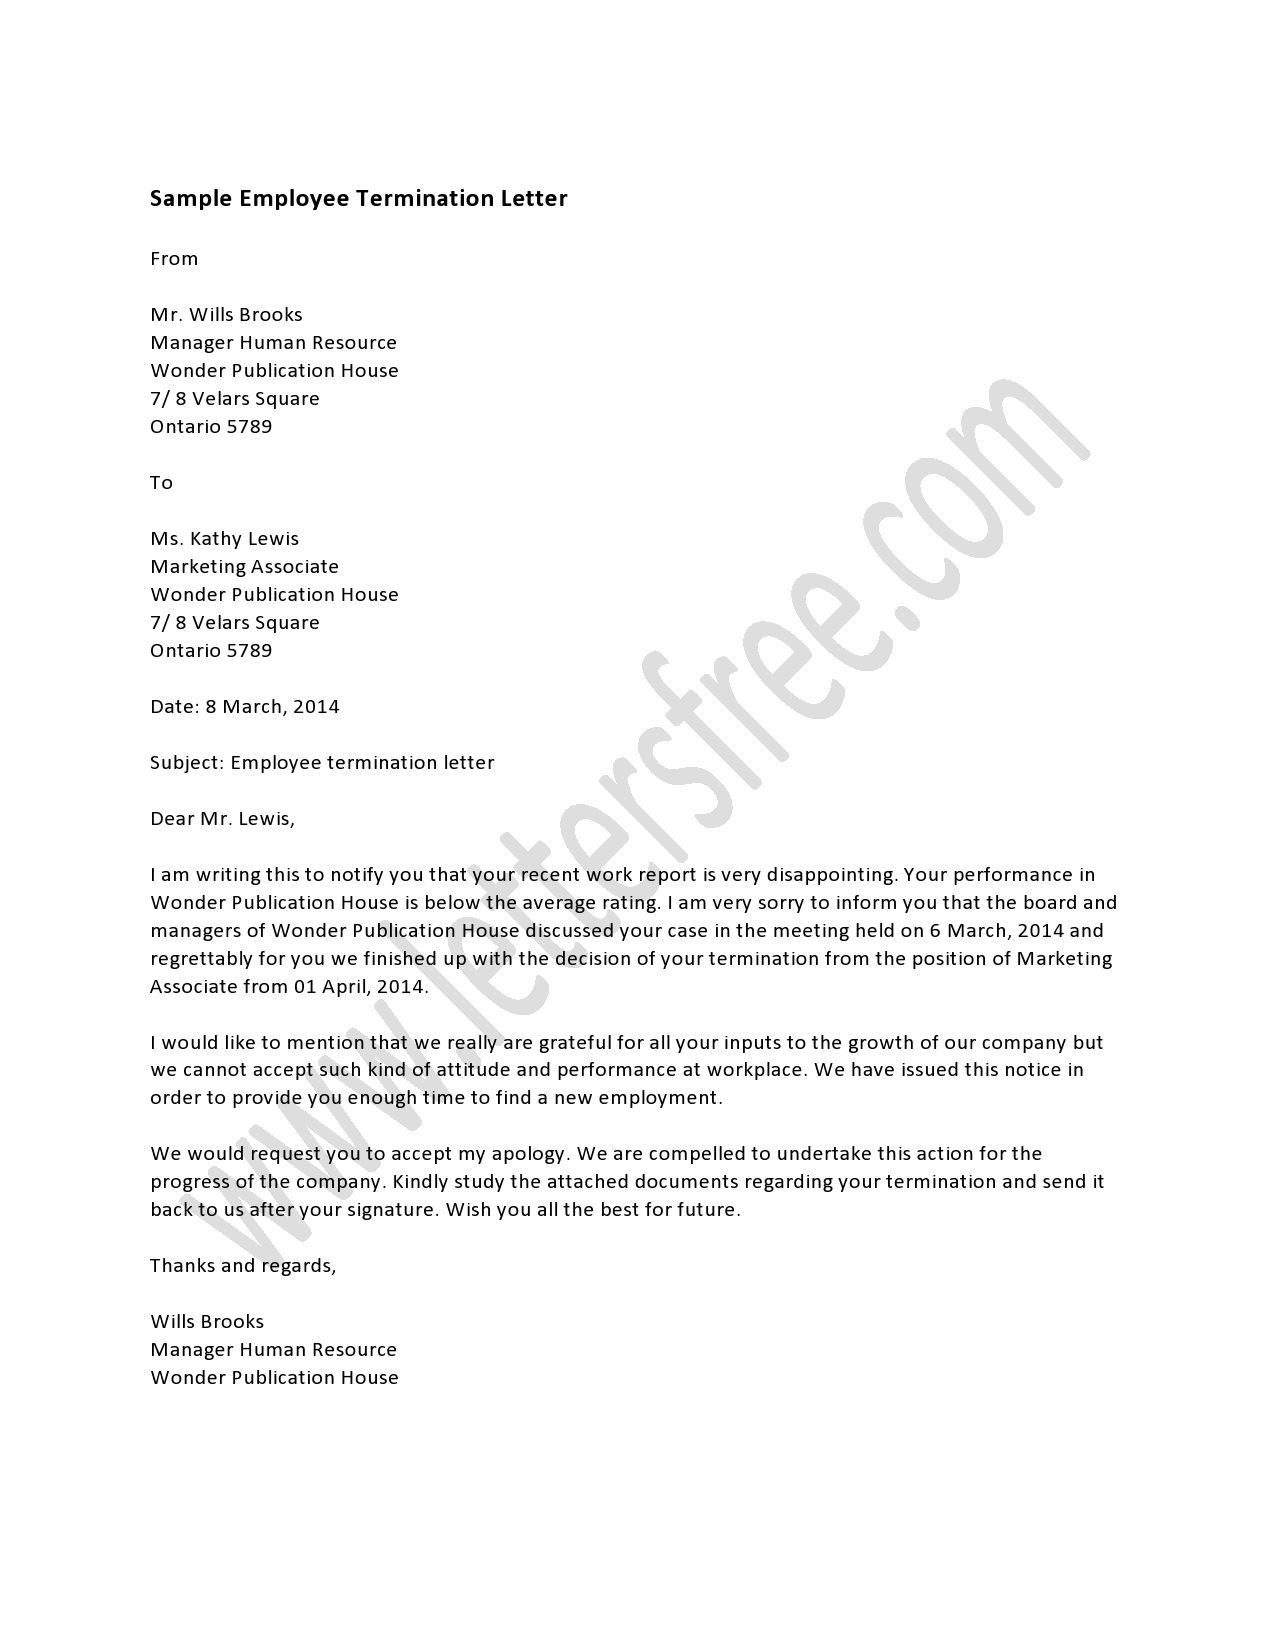 Employee Termination Letter is a template used by